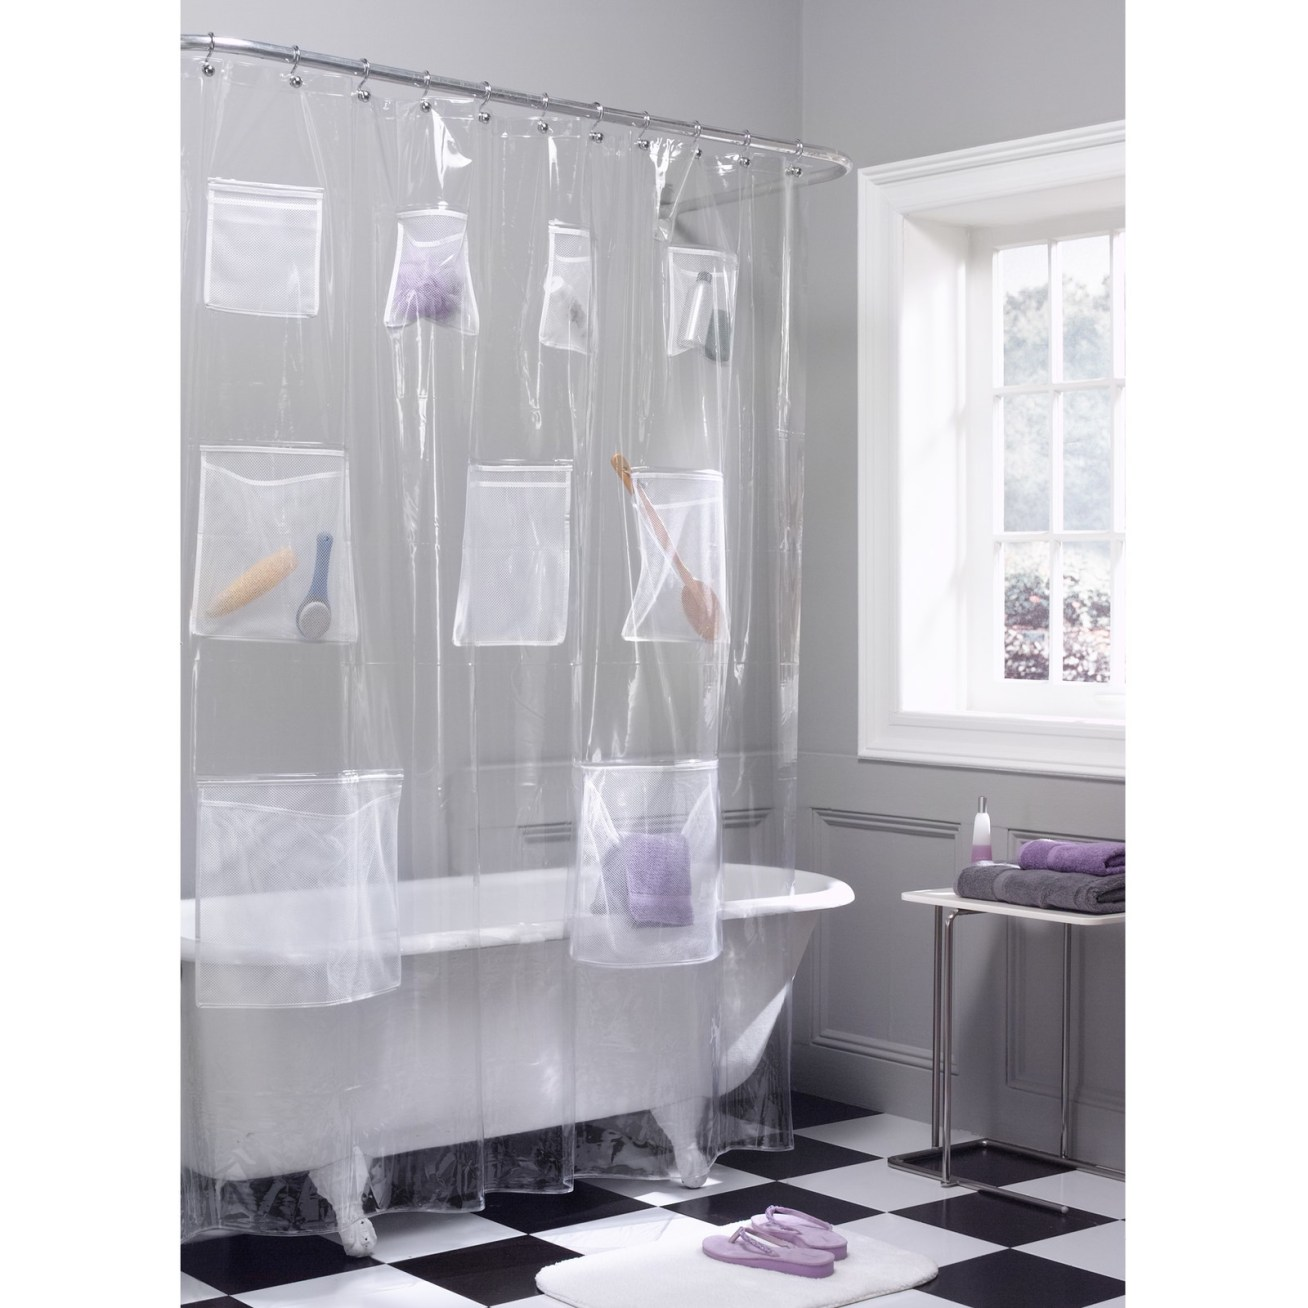 "Promising review: ""Good quality; it has several pockets with two different sizes. It's perfect for organizing and storing bathroom/cleaning/toiletries items. I put my decorative shower curtain in front of it so you don't see anything. It allows me to then have more room under my sink."" —Mommyorganizer